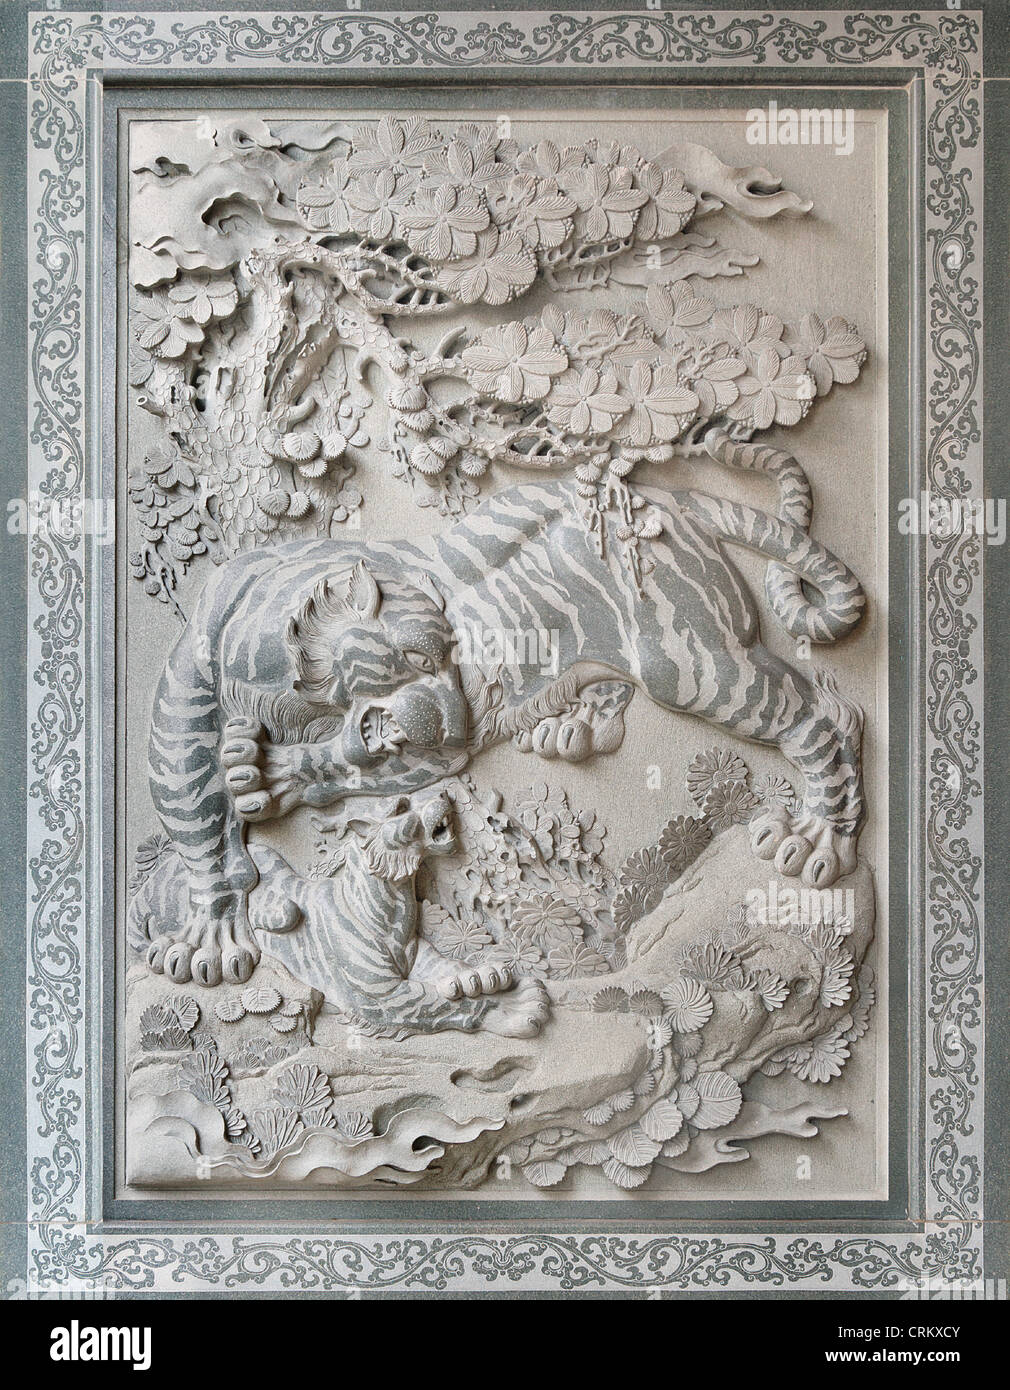 Tiger with cub sculpture relief stone carving outside